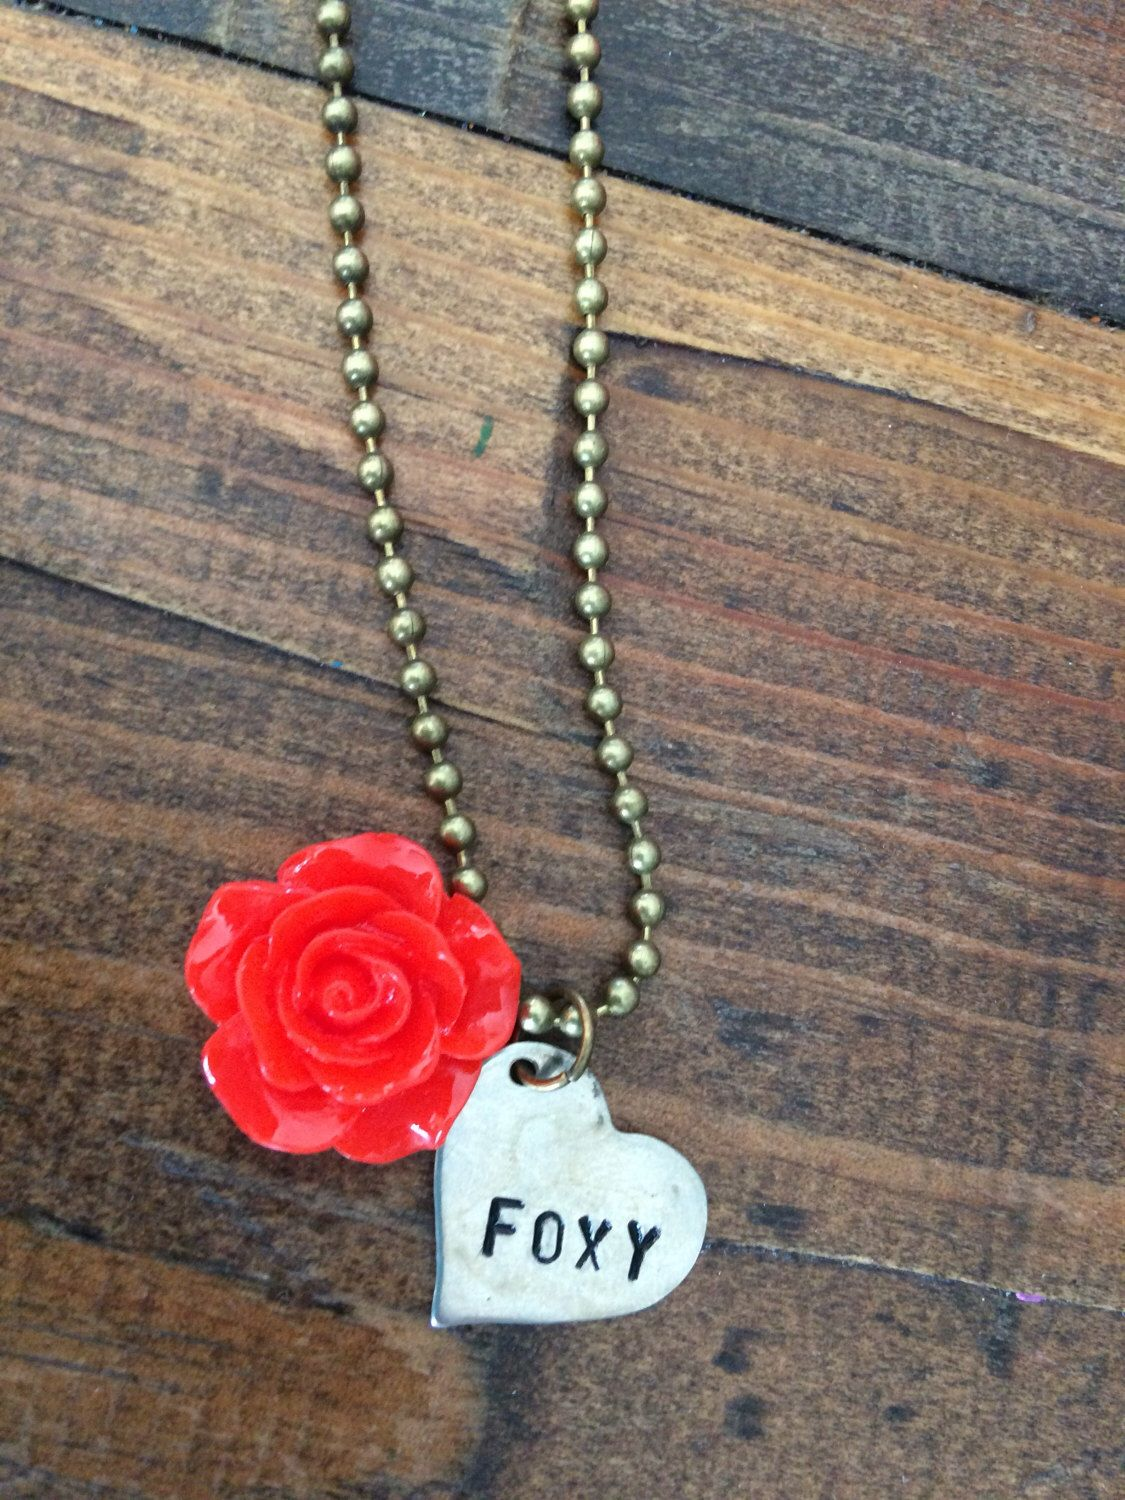 FOXY heart necklace on a ballchain- YOU pick chain length! by TwoHobbyGirls on Etsy https://www.etsy.com/listing/497910712/foxy-heart-necklace-on-a-ballchain-you